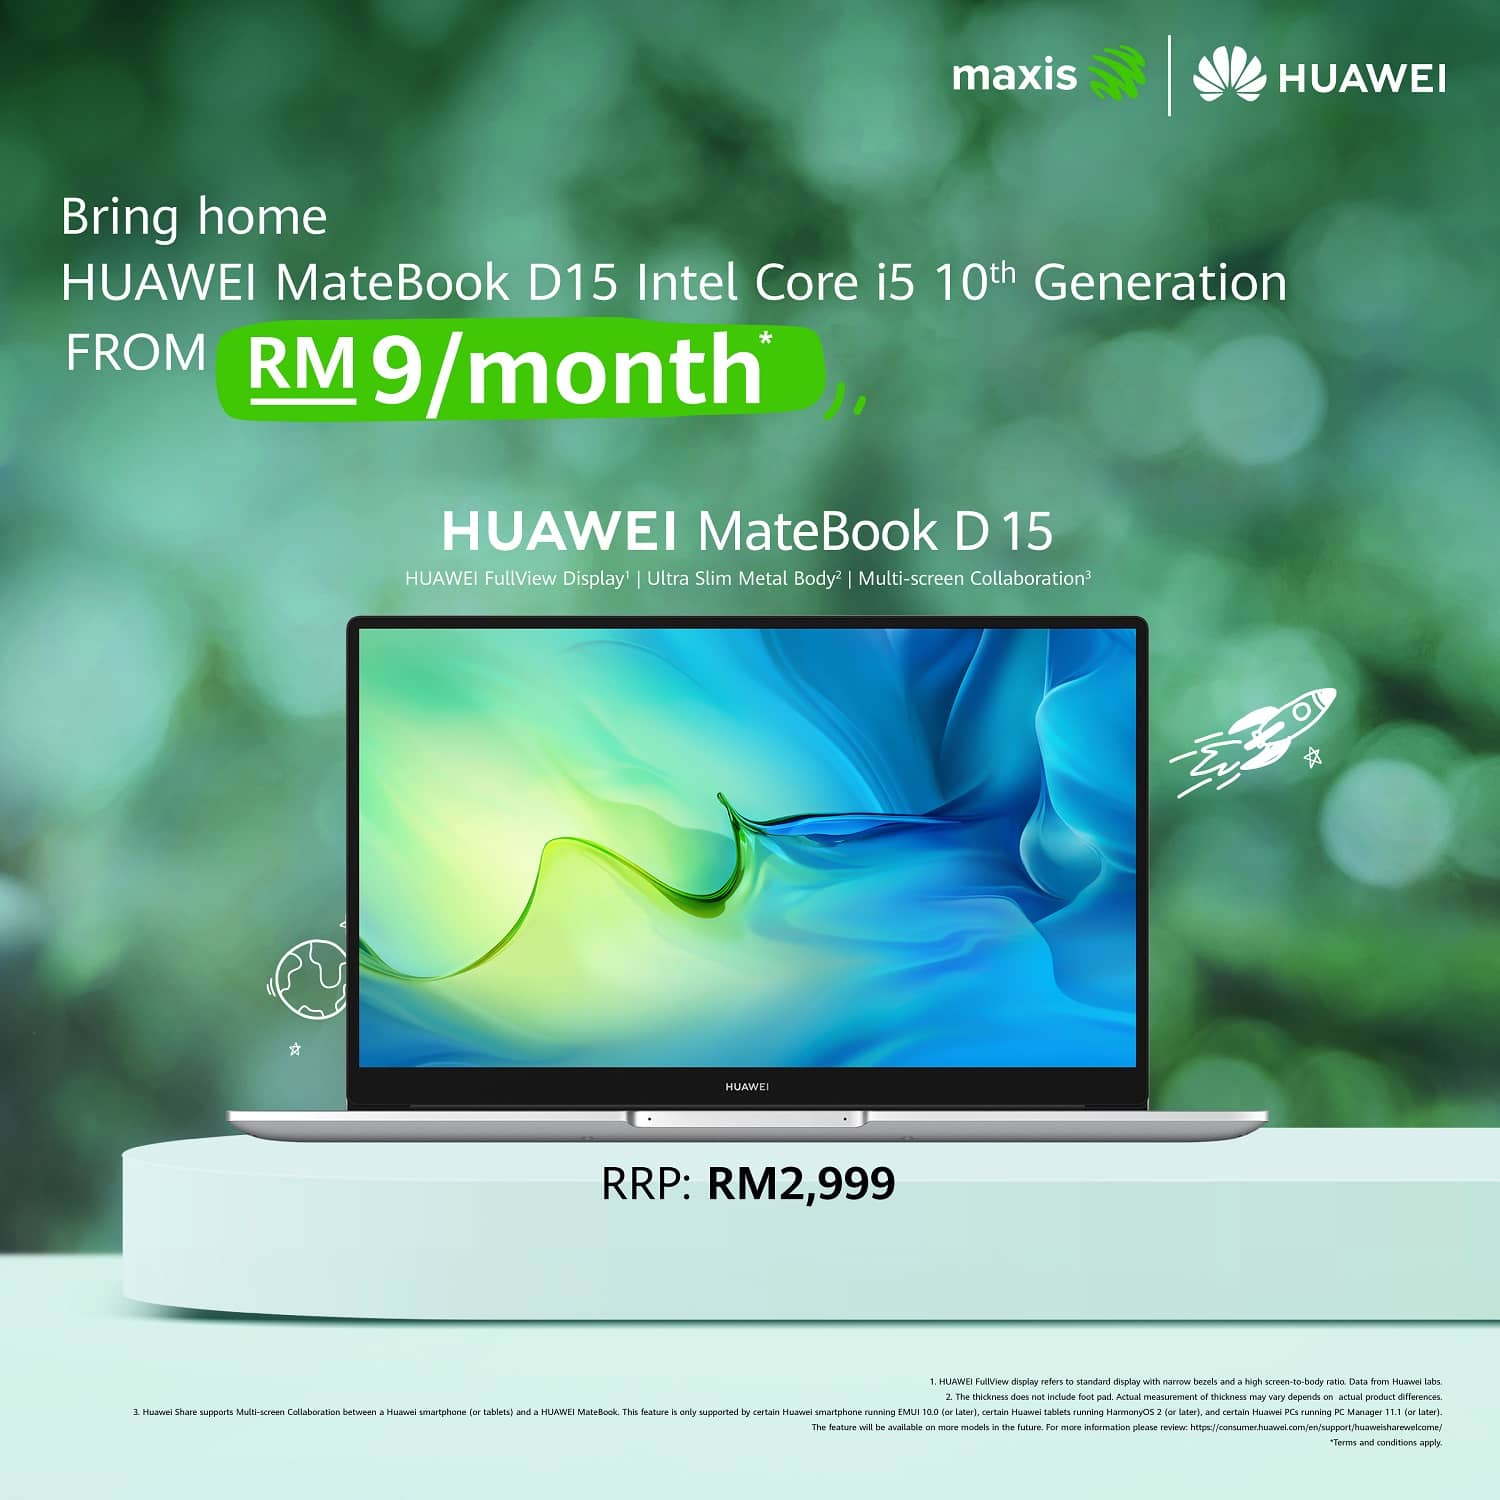 Revolutionise Your Work Life With HUAWEI MateBook D15 And Maxis, Starting From RM9 Onwards